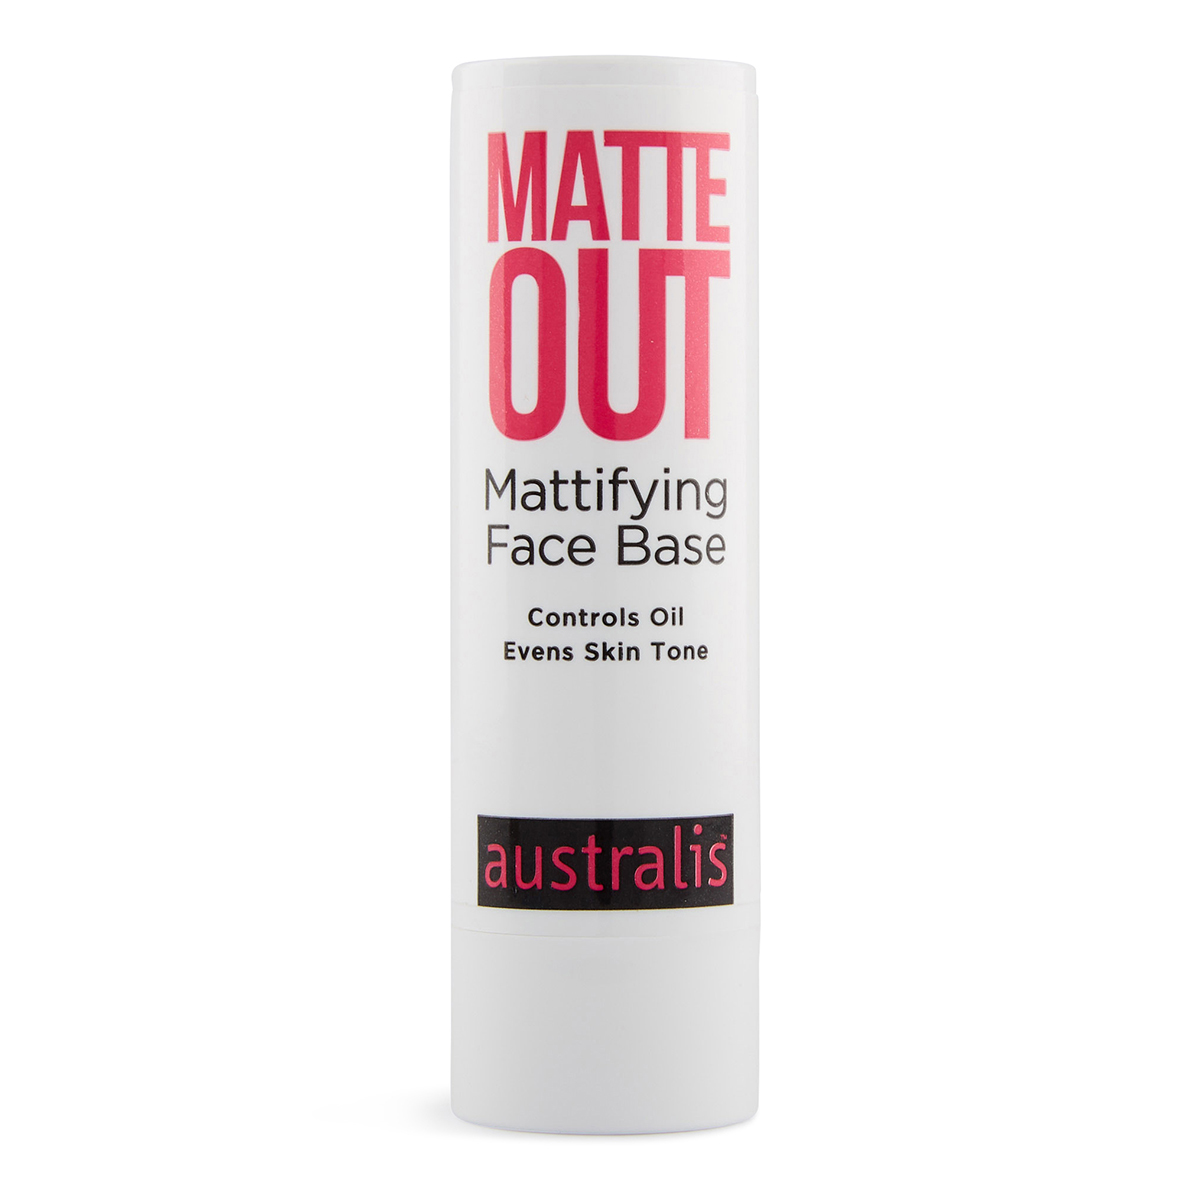 Матирующий праймер Australis Matte Out Mattifying Face Base – купить ... 0c43f5a13d5